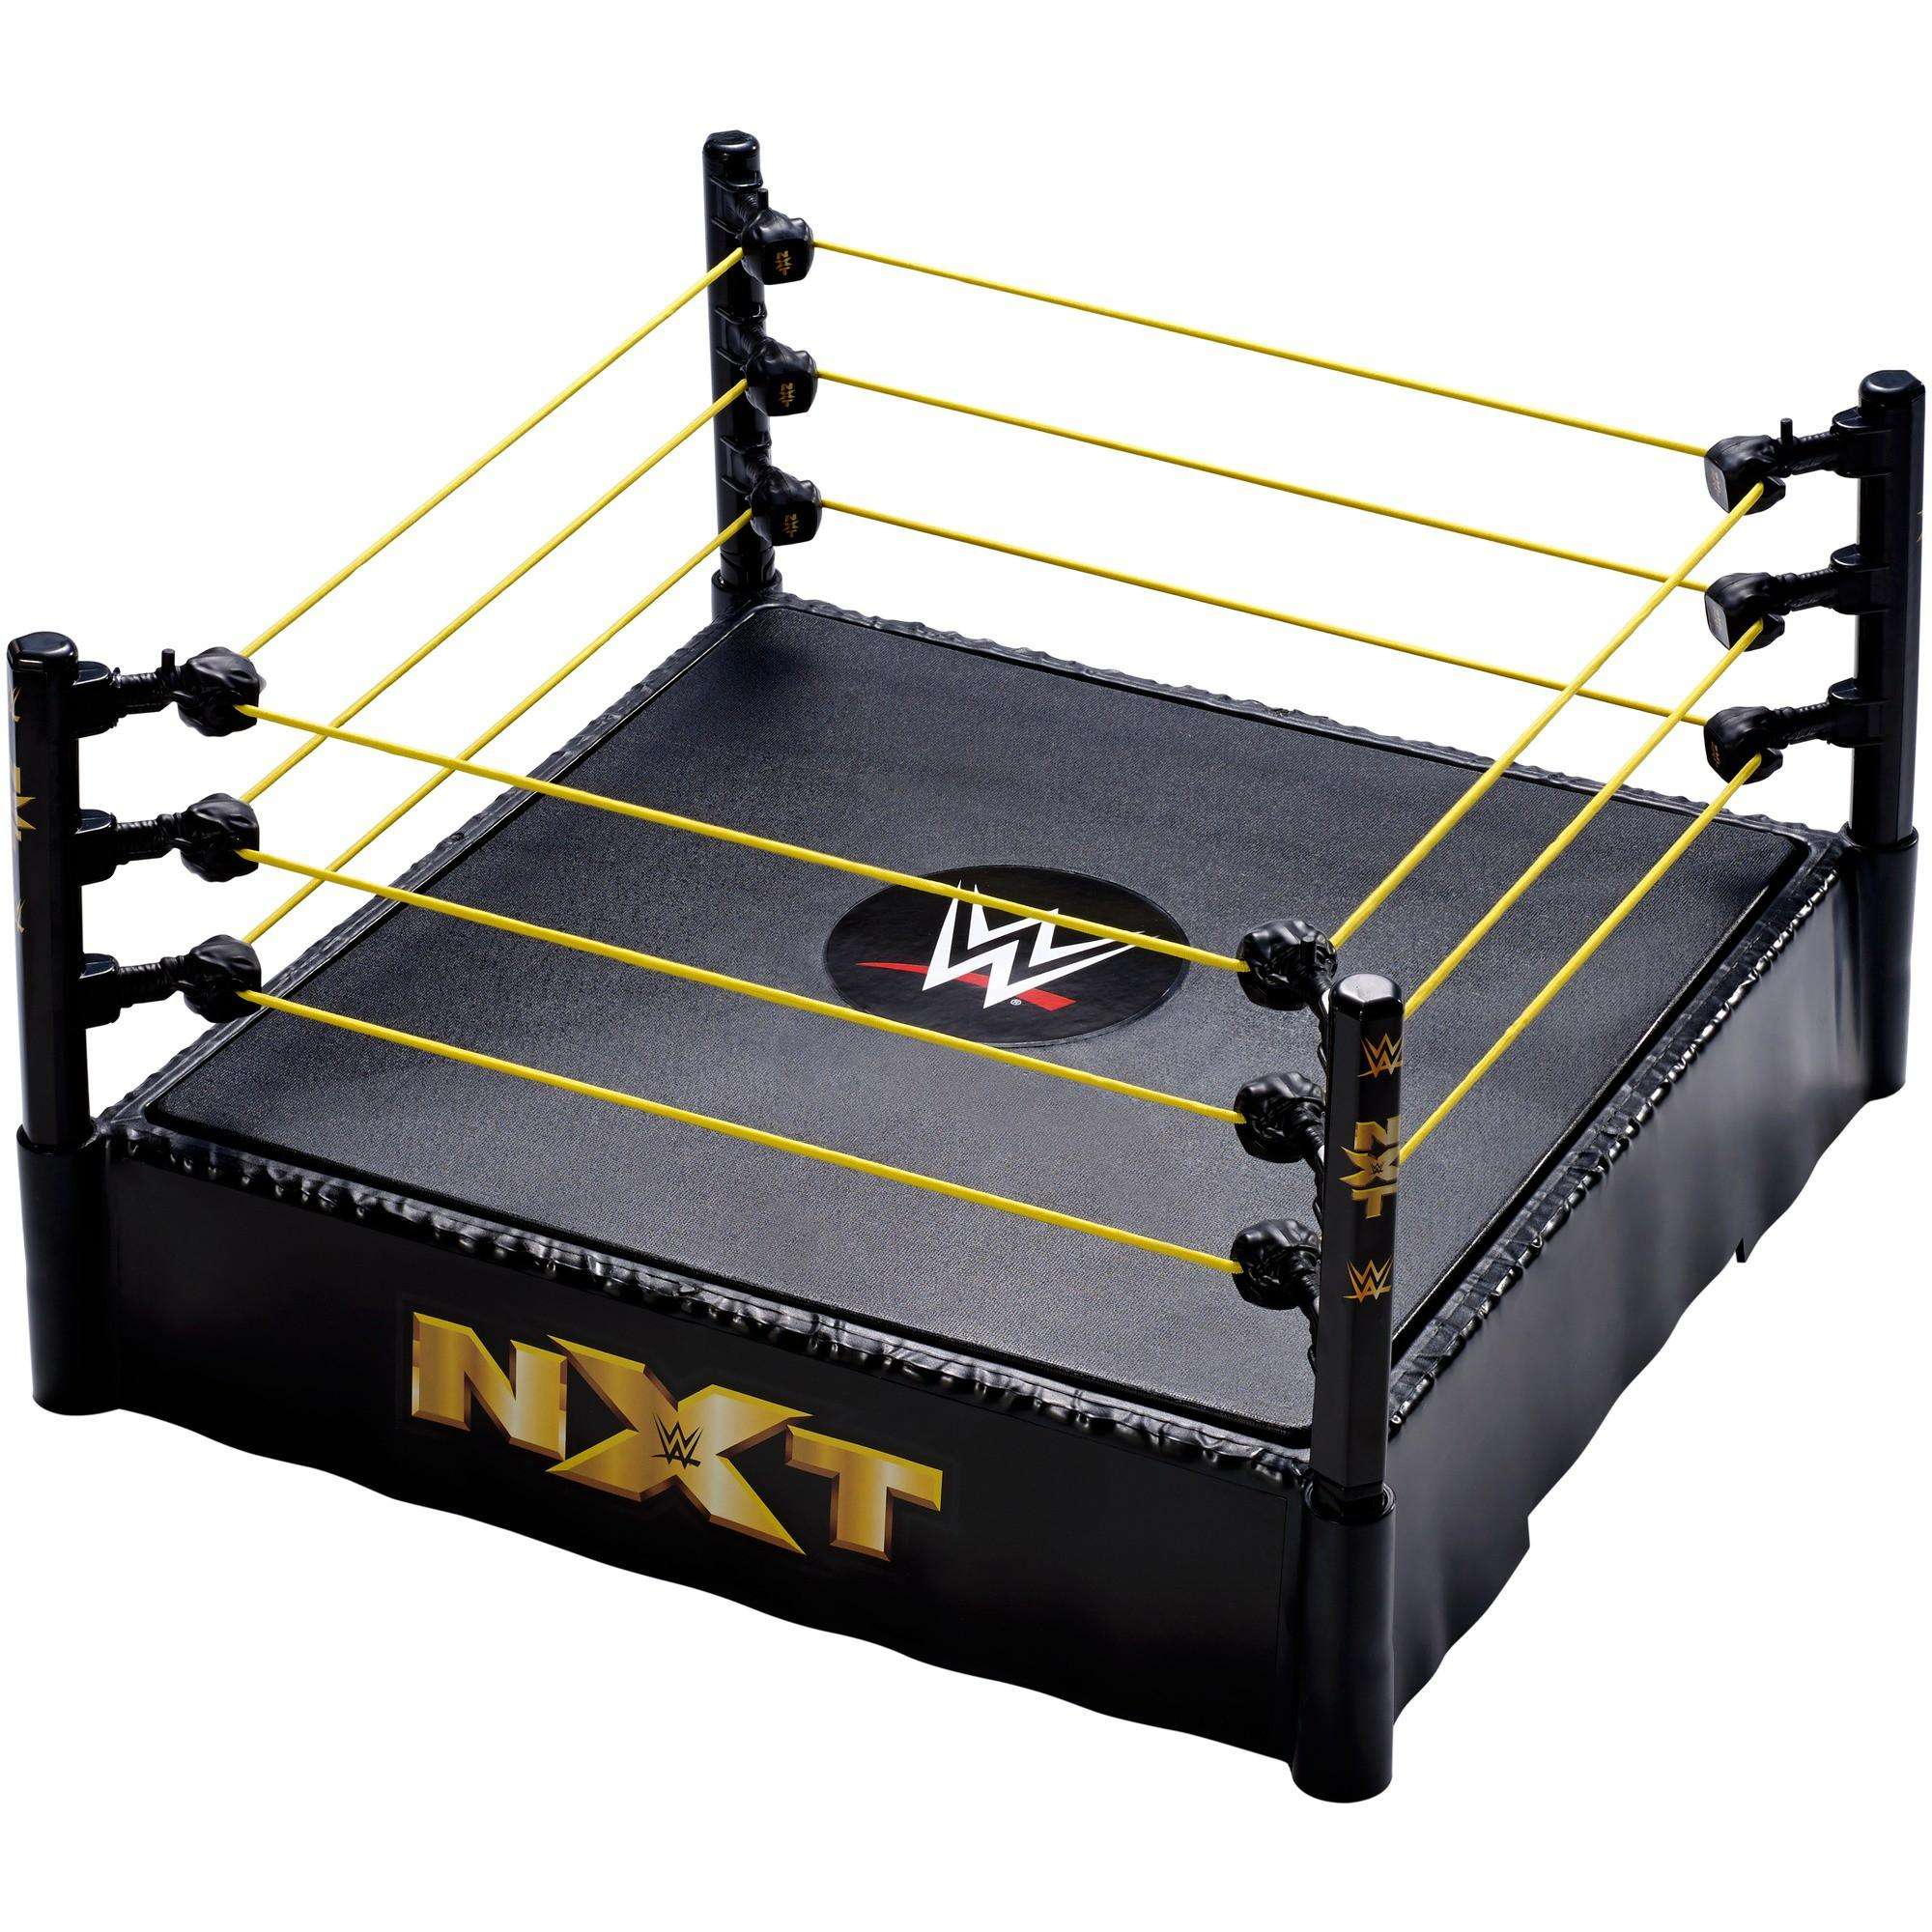 WWE NXT 14-Inch Wrestling Ring with Authentic Ropes